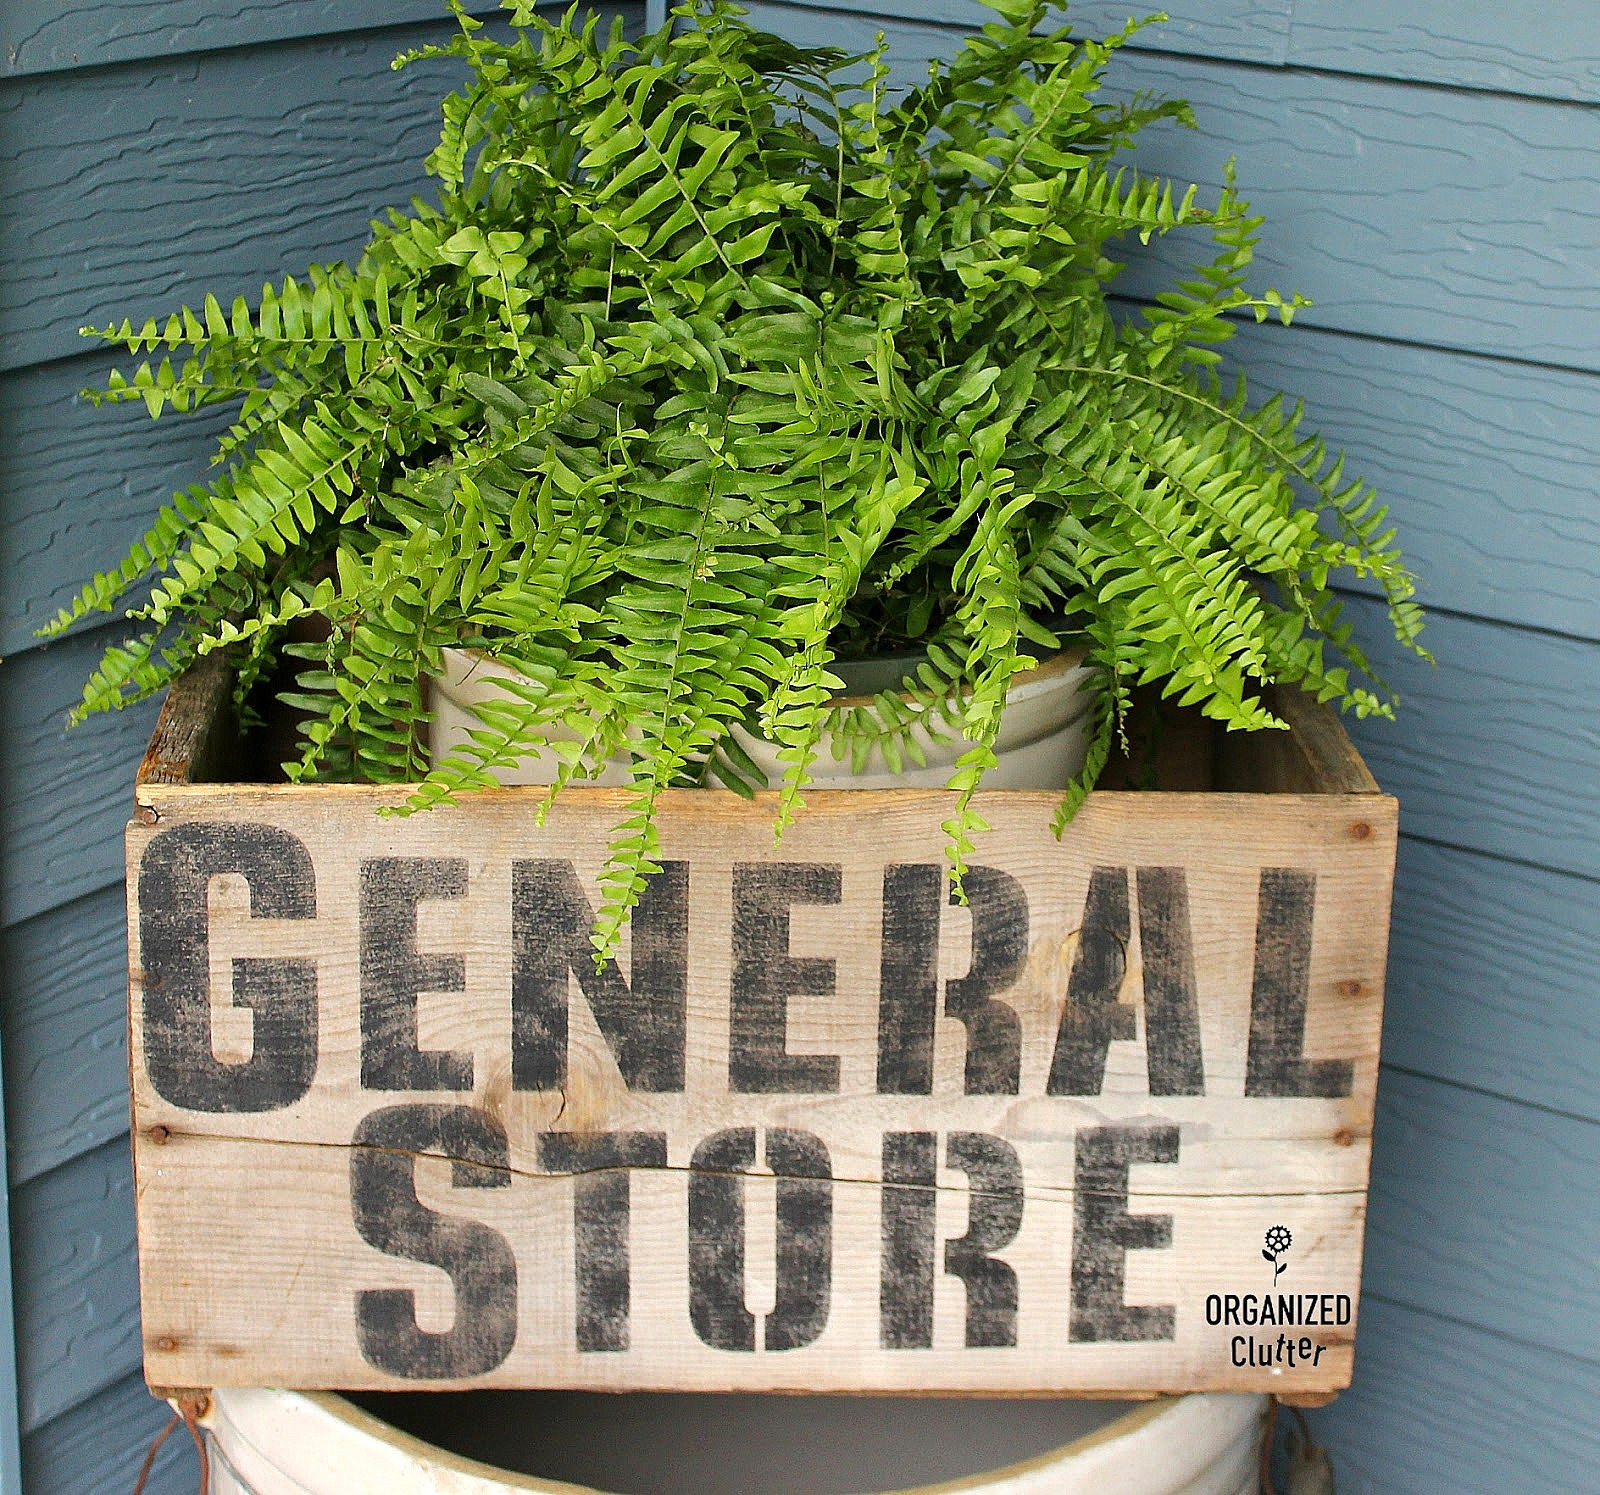 General Store crate planter by Organized Clutter, featured on Funky Junk Interiors